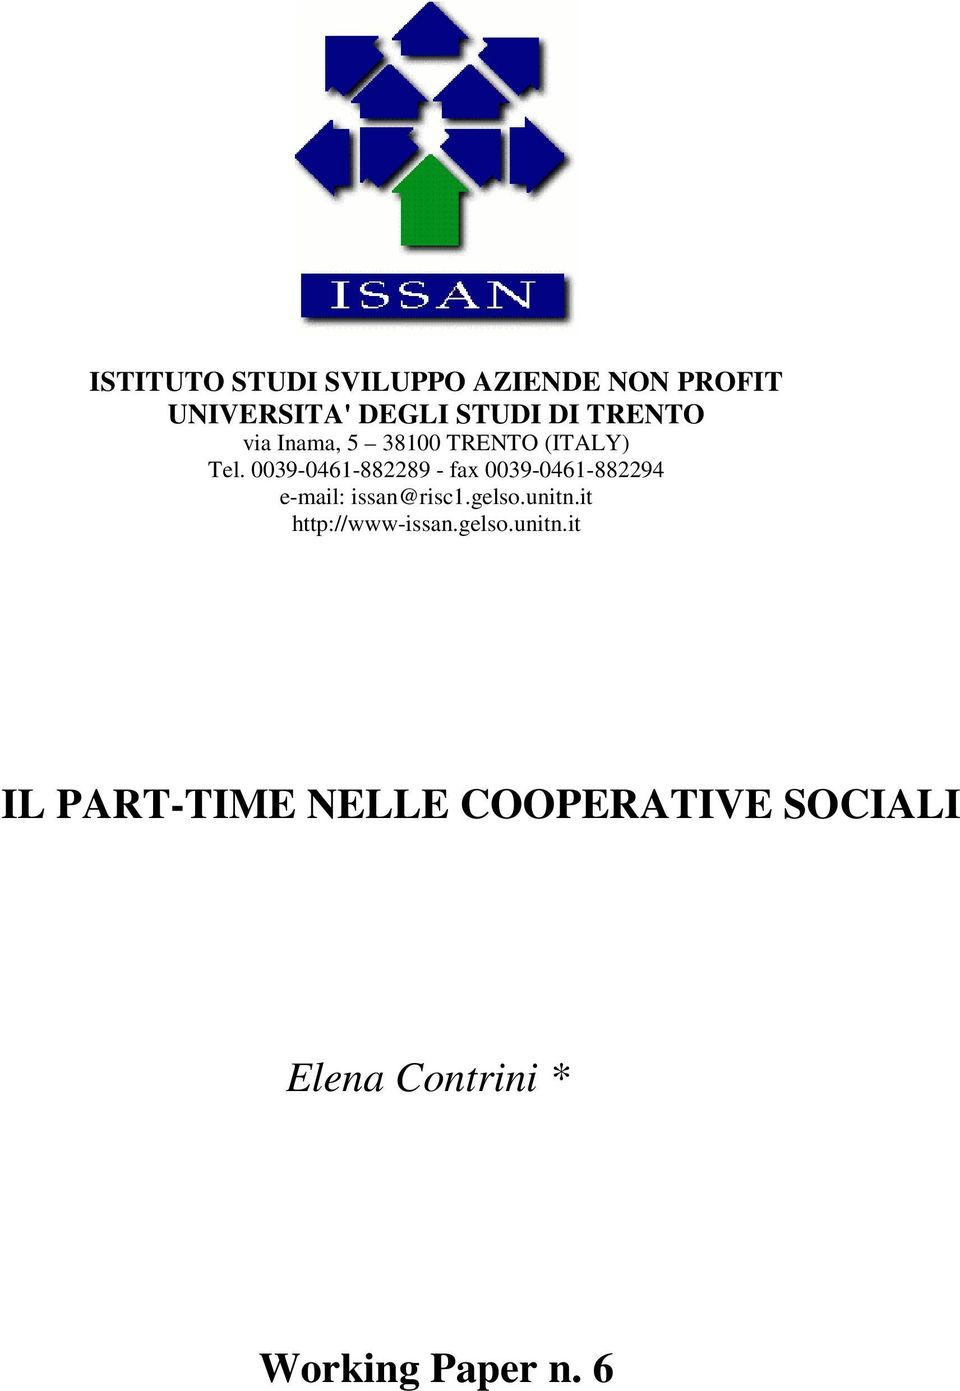 0039-0461-882289 - fax 0039-0461-882294 e-mail: issan@risc1.gelso.unitn.